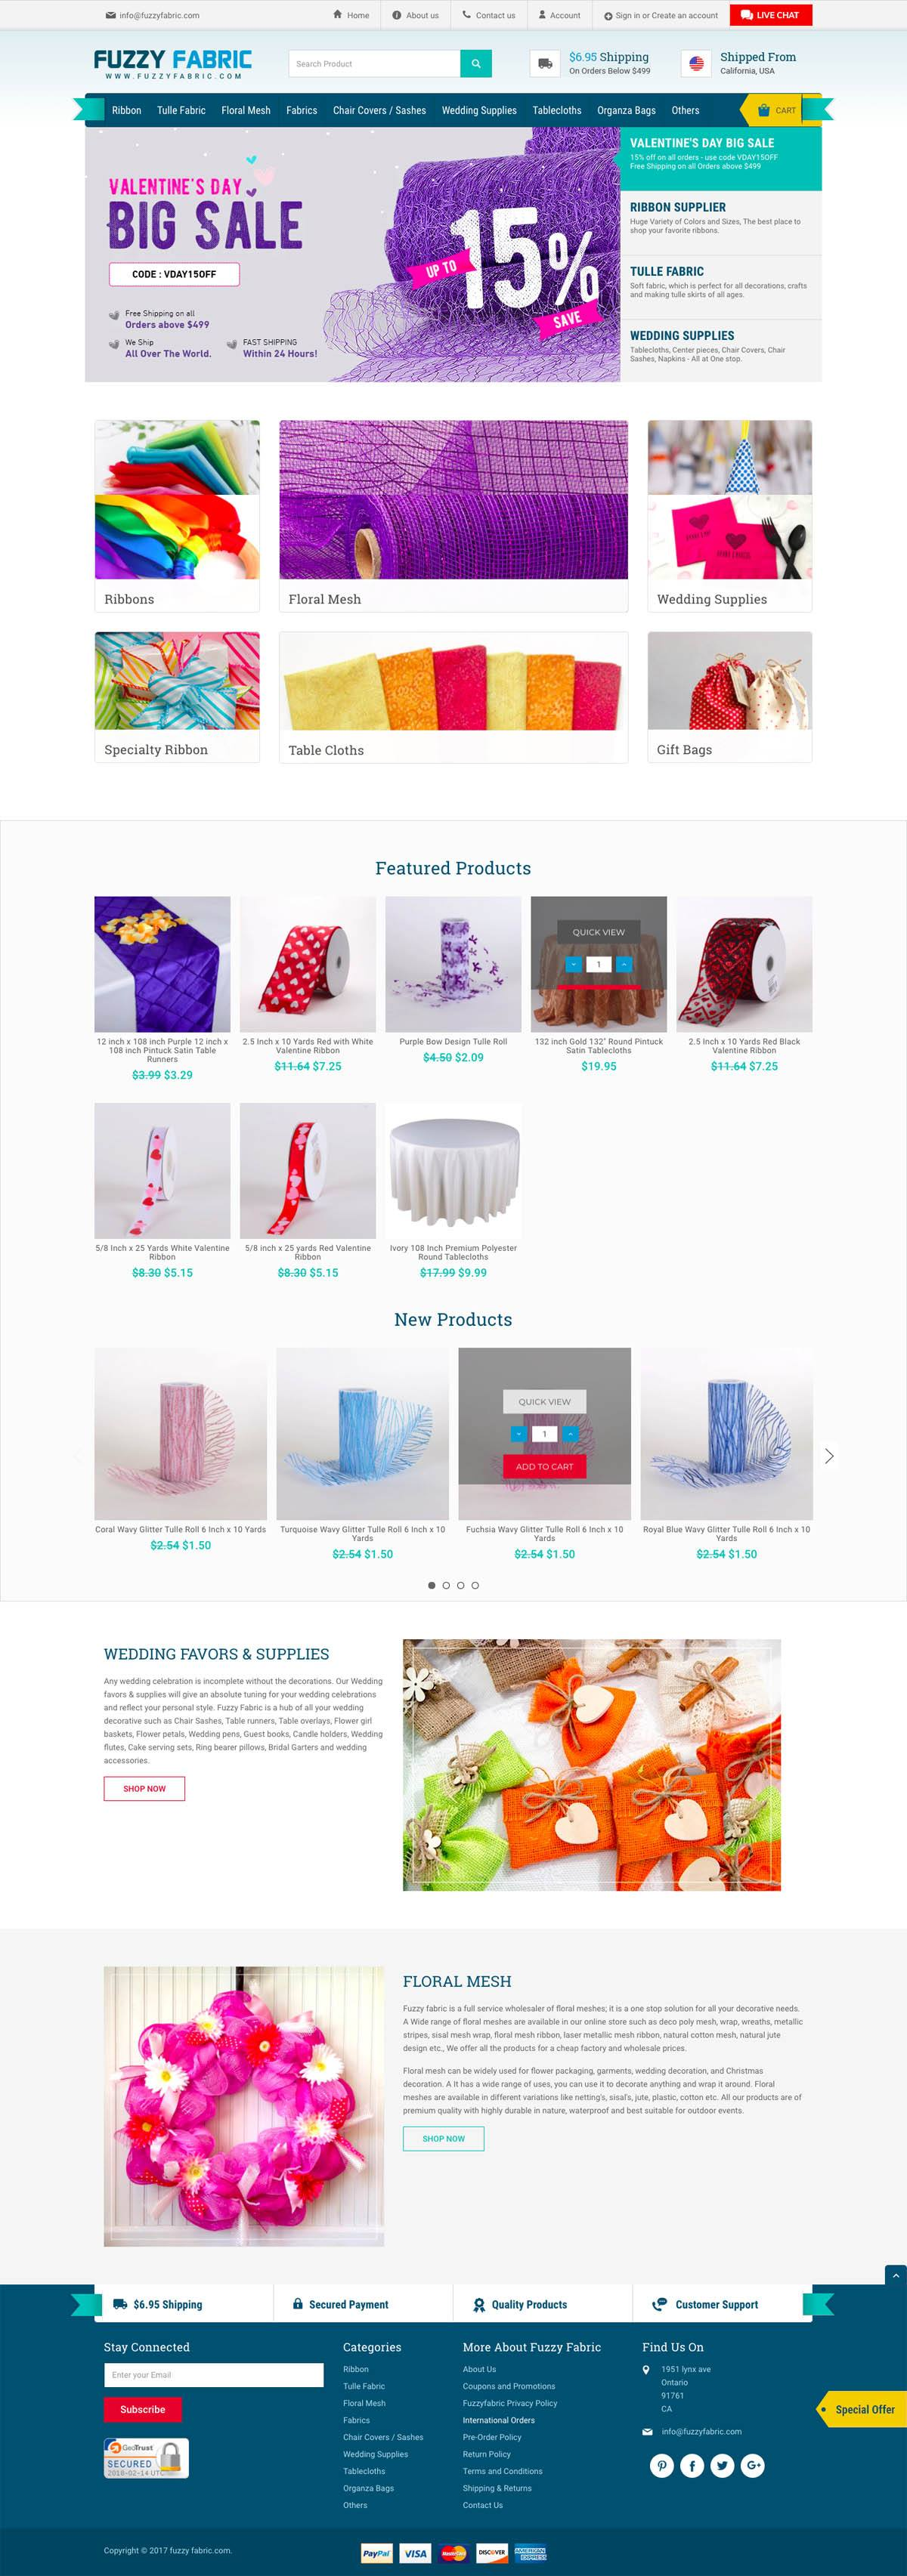 eCommerce website: Fuzzy Fabric